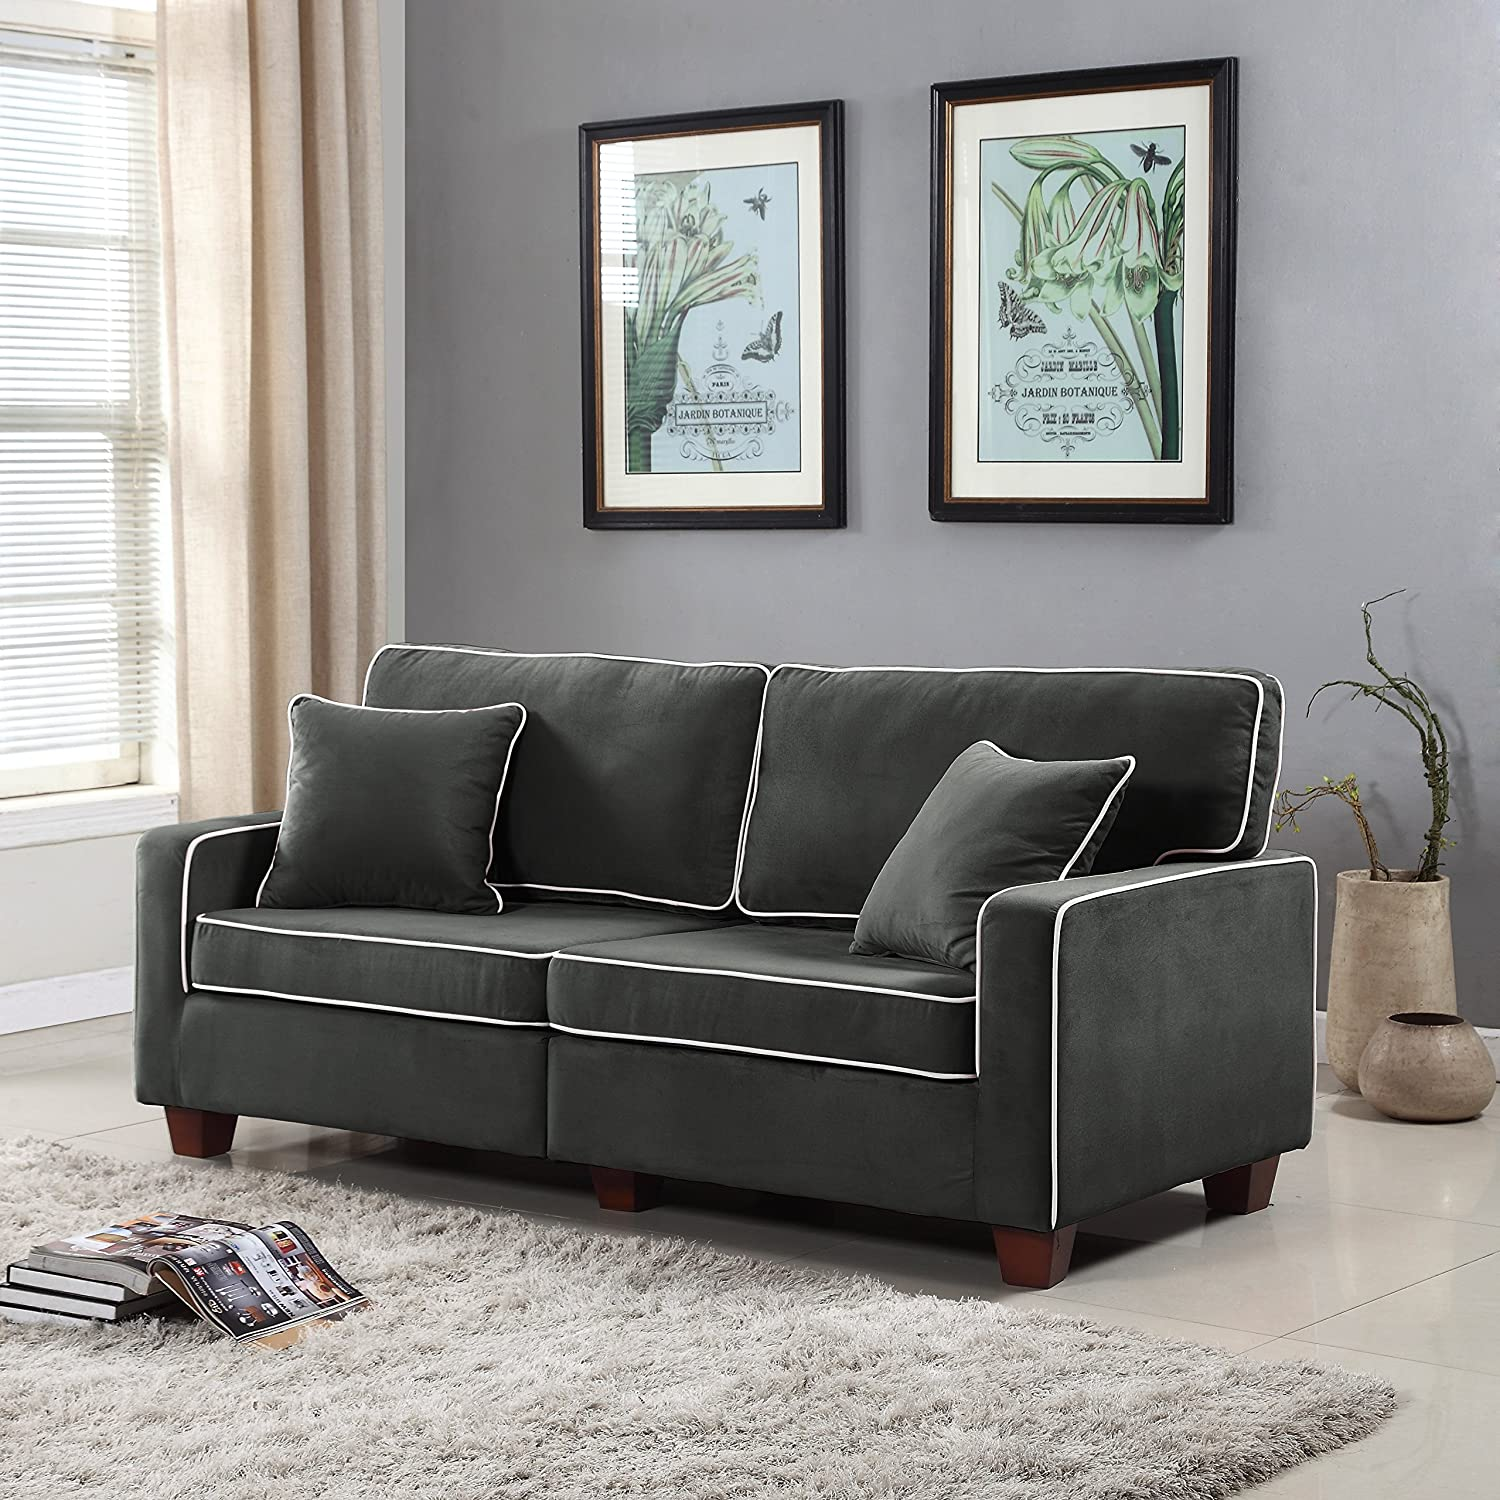 Divano Roma Furniture Collection - Modern Two Tone Velvet Fabric Living Room Love Seat Sofa (Dark Grey